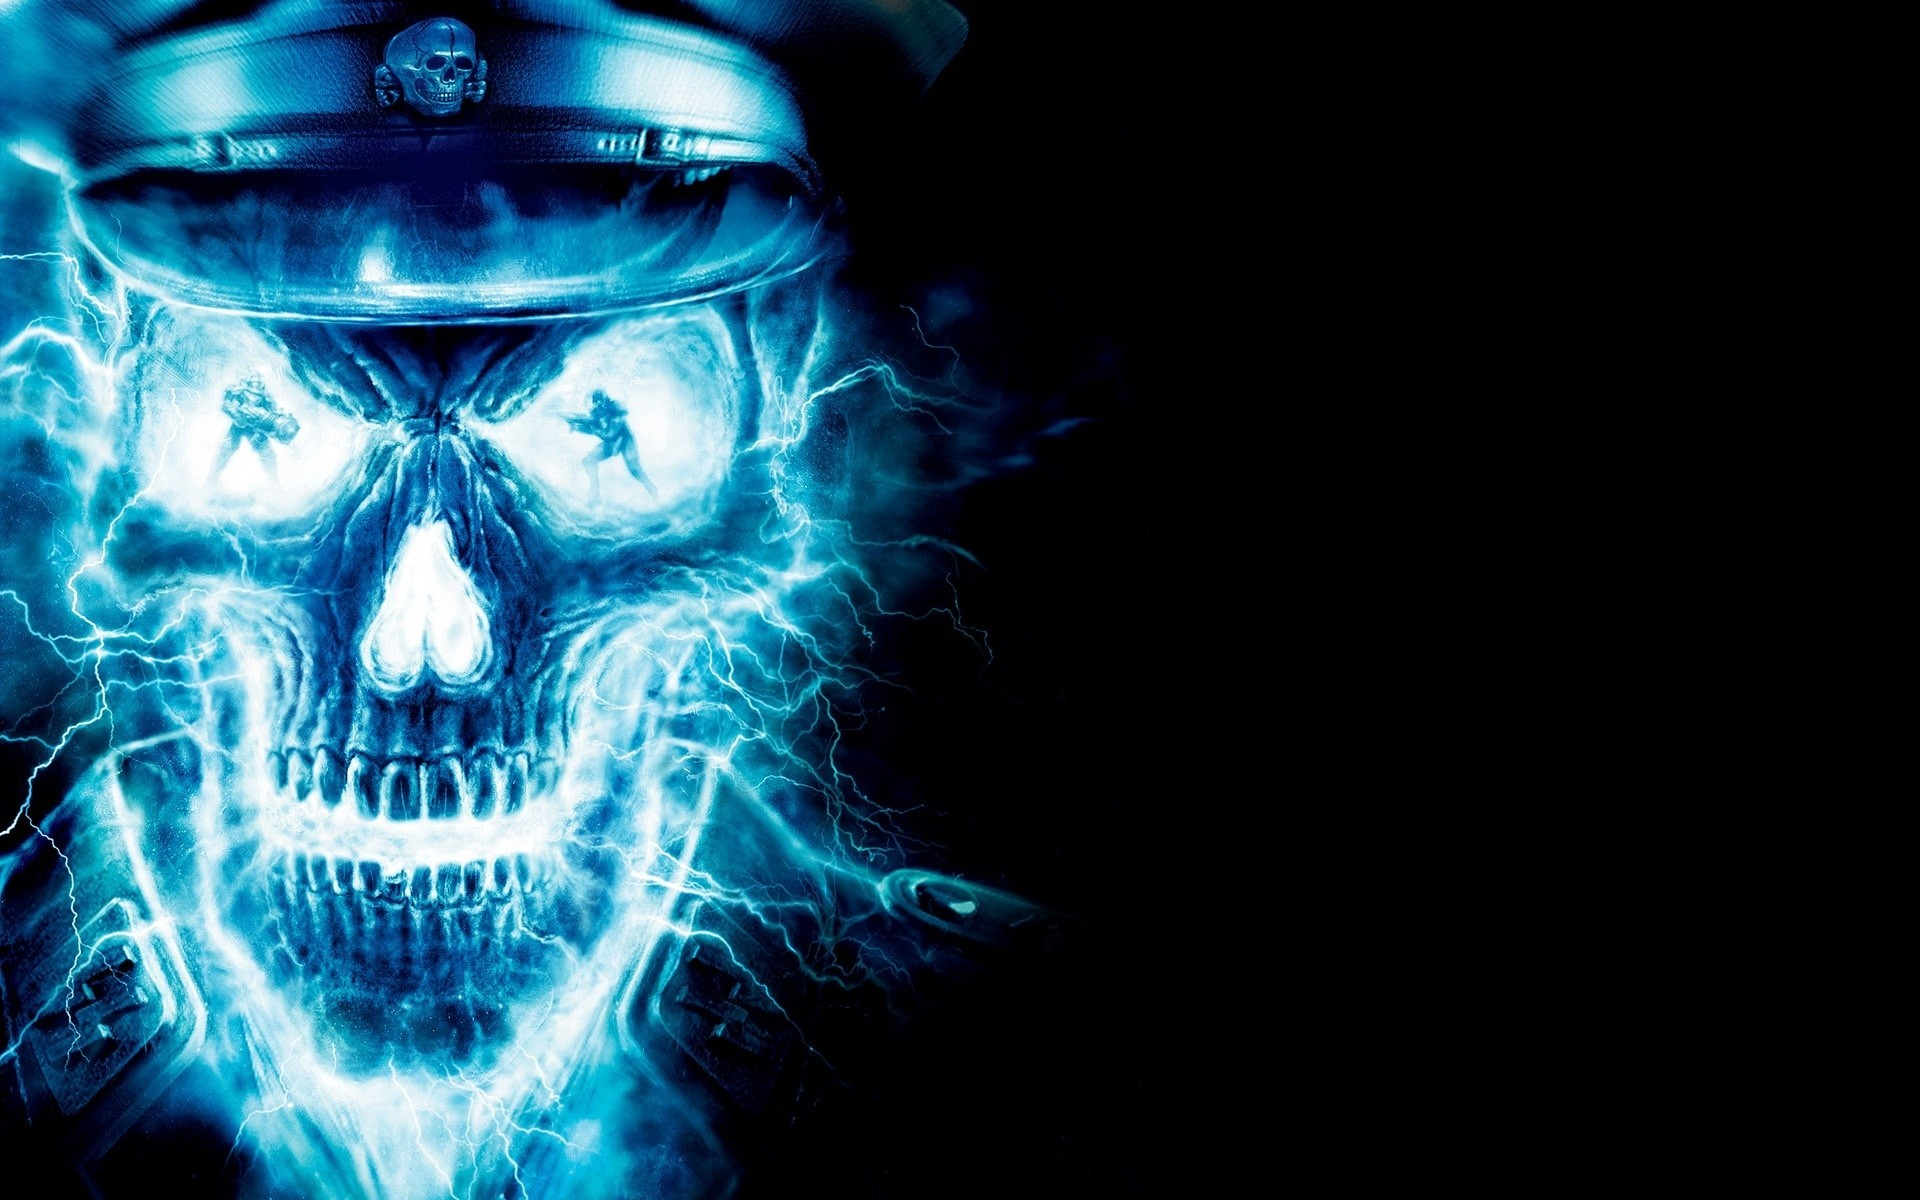 Res: 1920x1200, Belkis Mcentee: Blue Fire Skull Wallpaper, WP-84: px